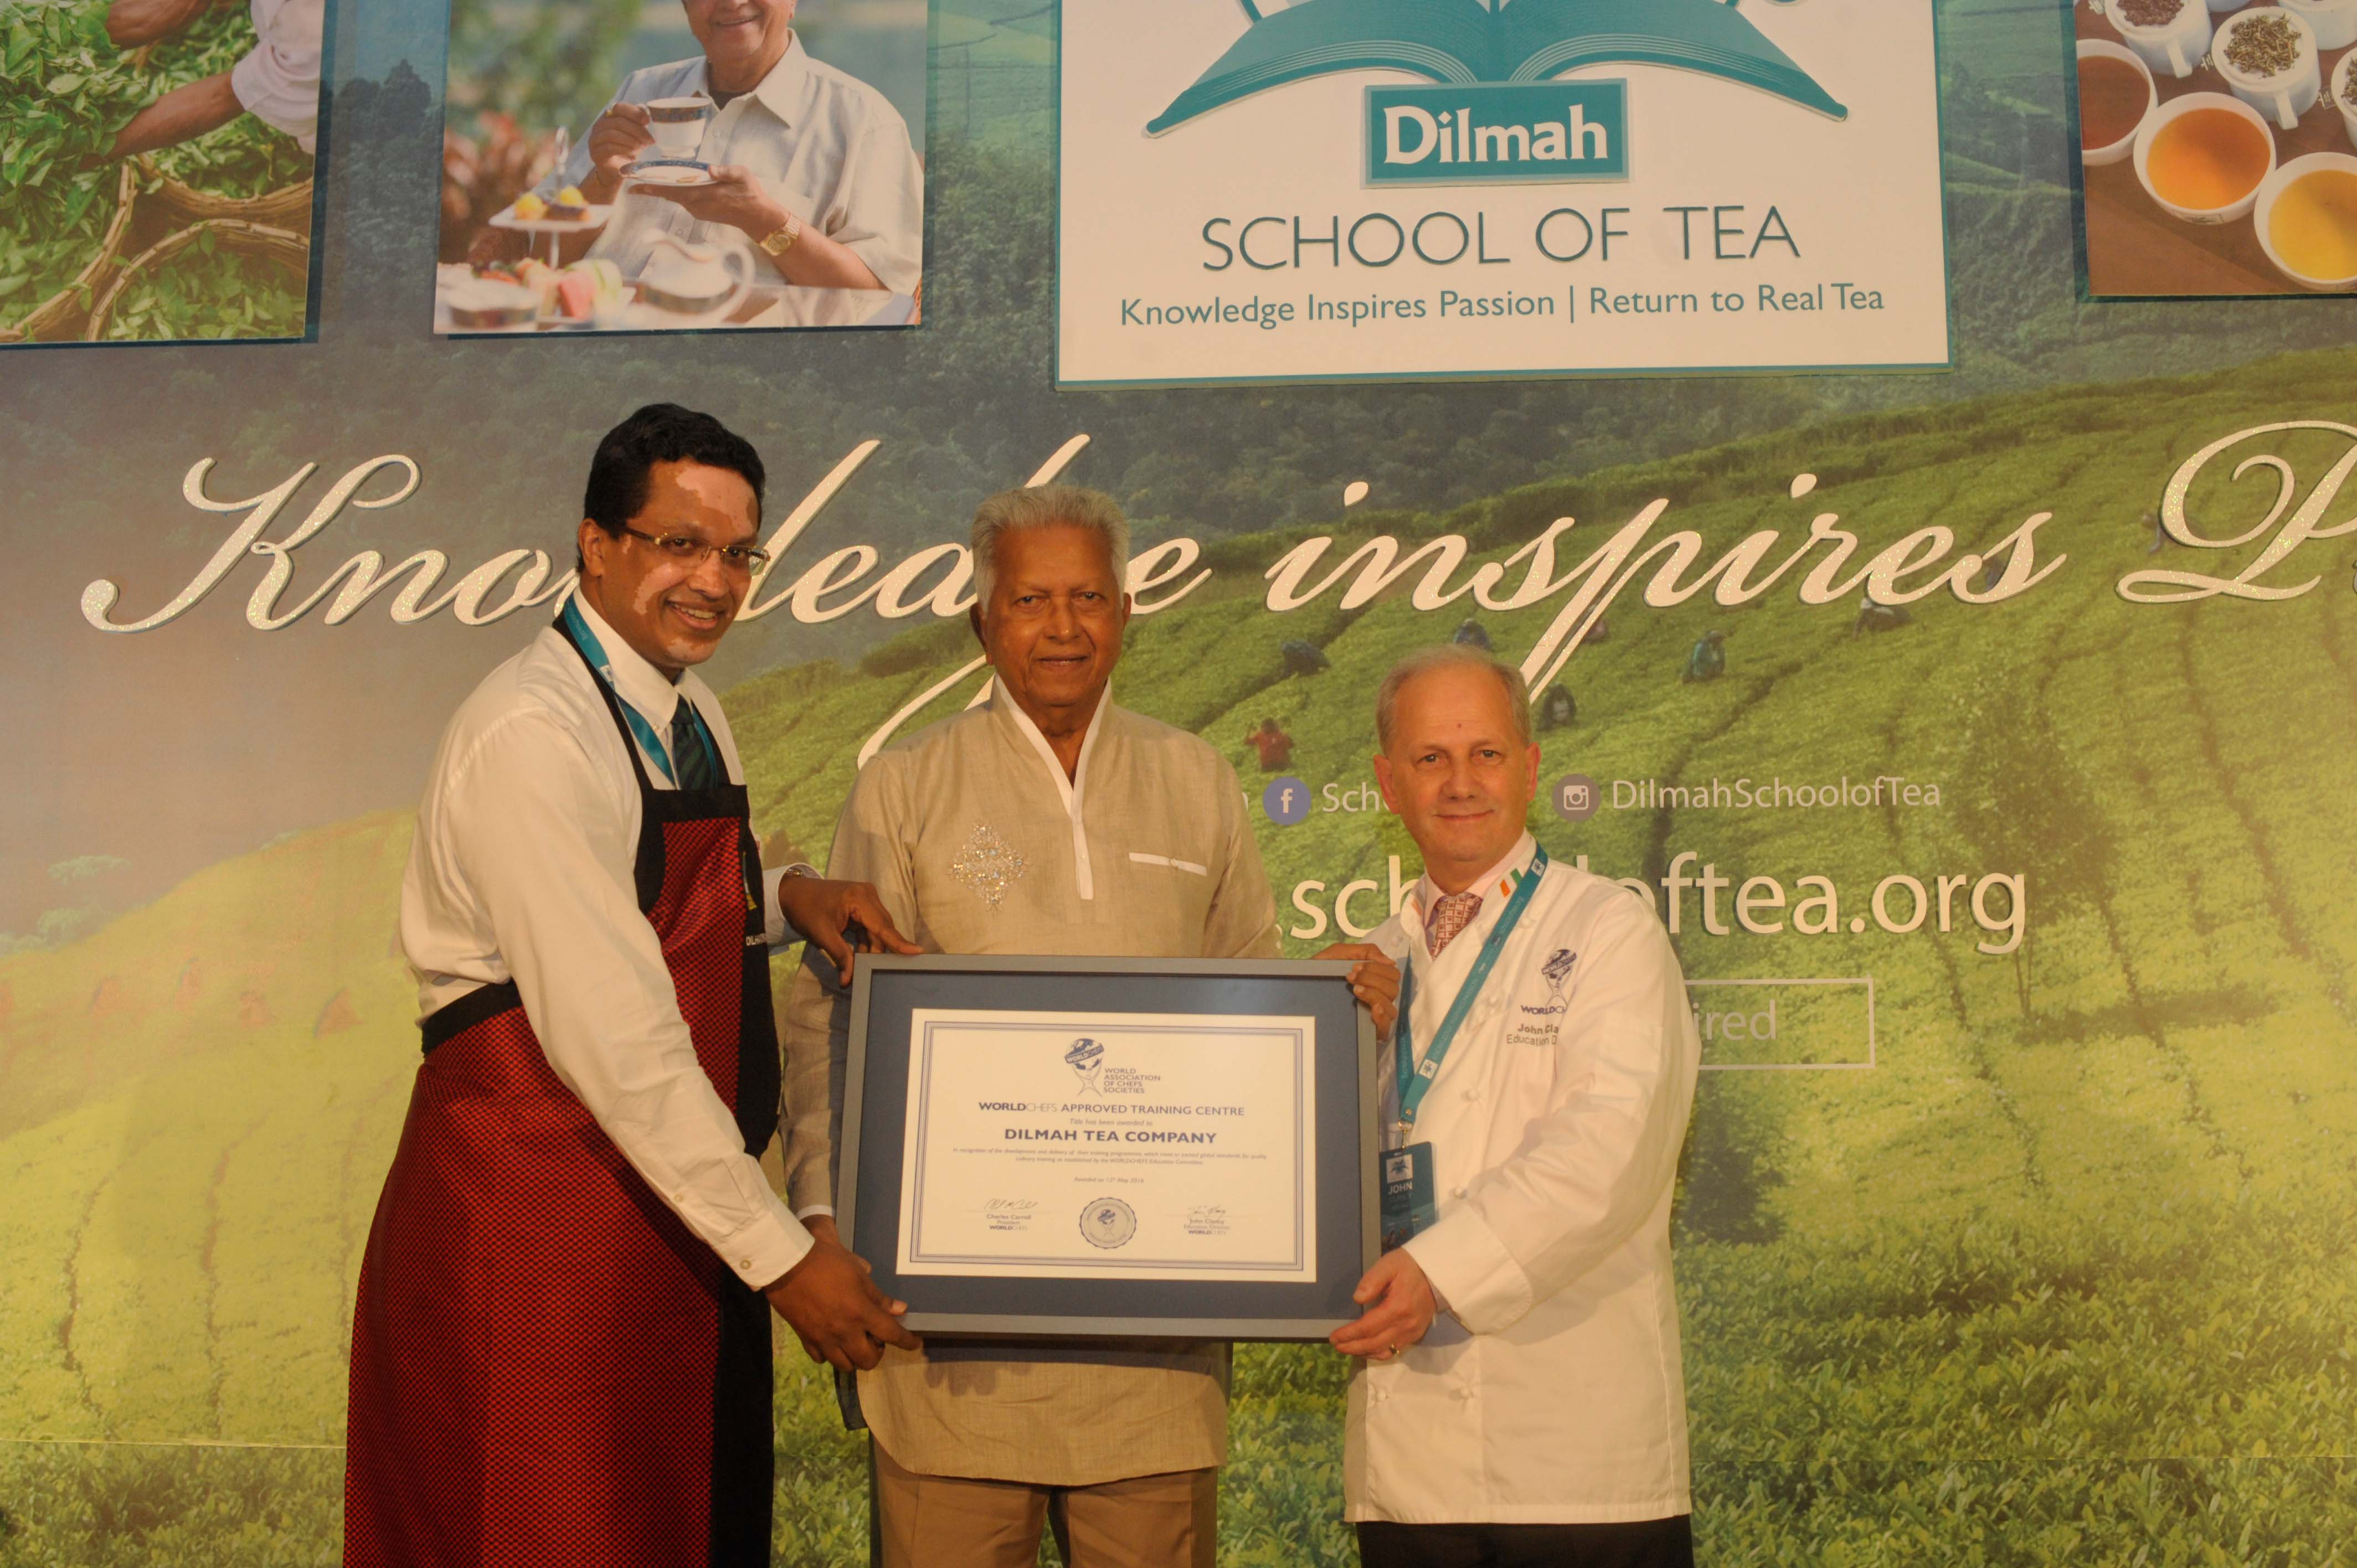 Dilmah School of Tea May 2016 - Day 5 - Certificate Presentation